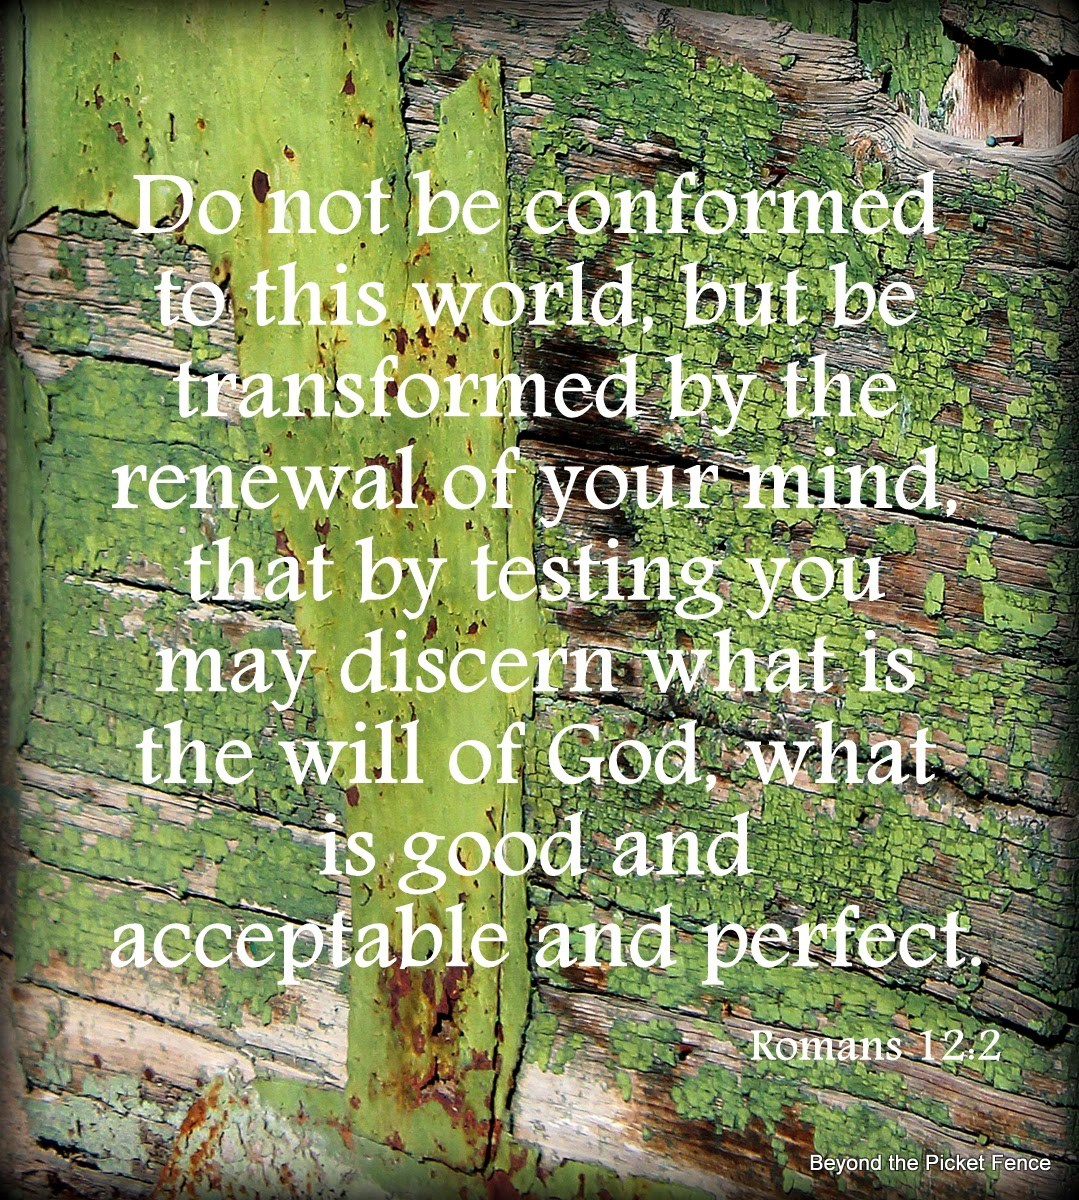 bible verse Romans 2:12 God's word renewal http://bec4-beyondthepicketfence.blogspot.com/2014/03/sunday-verses_9.html